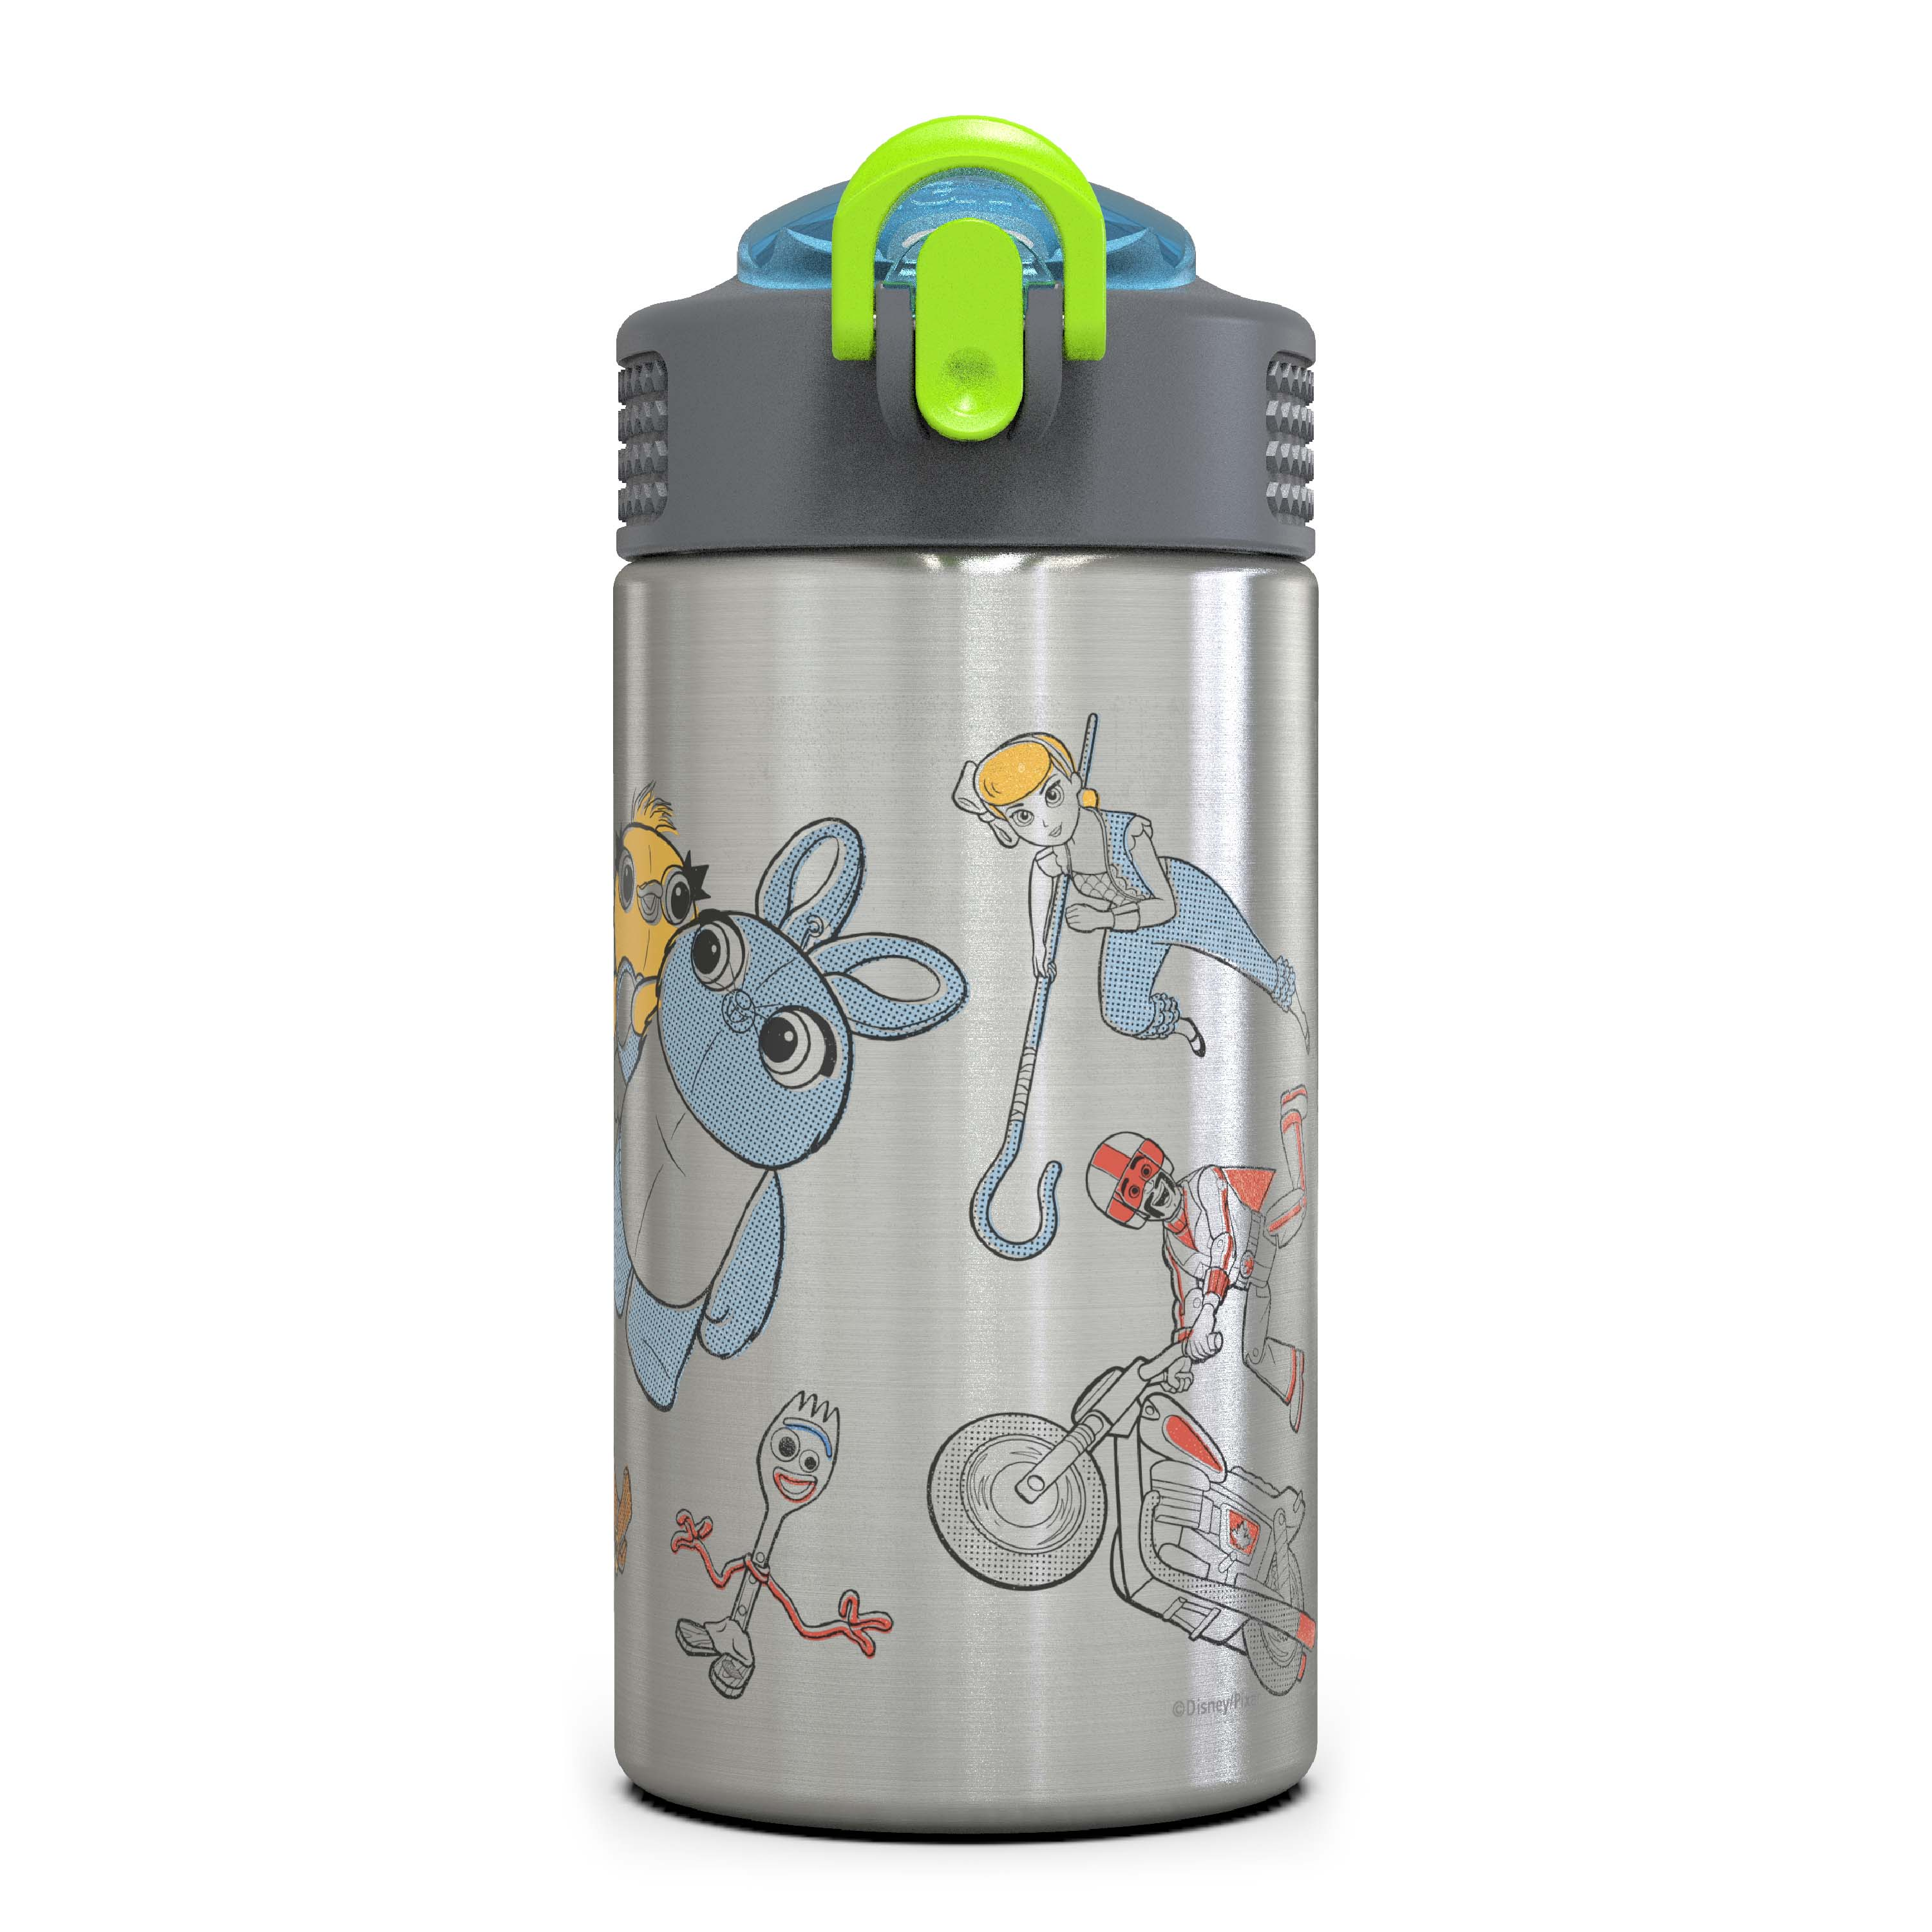 Toy Story 4 Movie 15.5 ounce Water Bottle, Buzz, Woody & Friends slideshow image 1